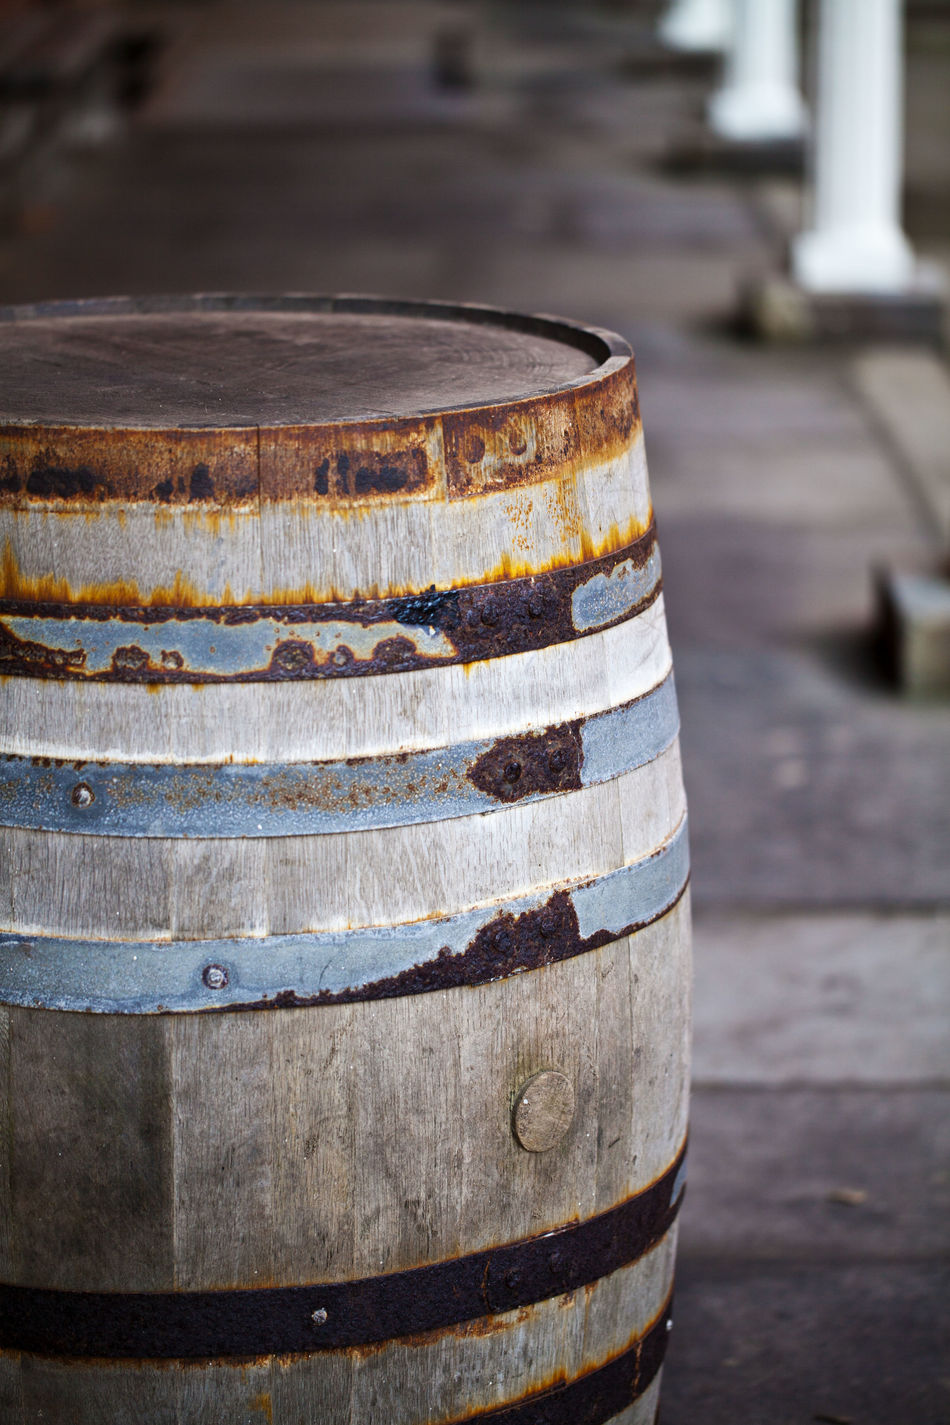 Barrel Close-up Day Focus On Foreground Industrial No People Outdoors Vintage